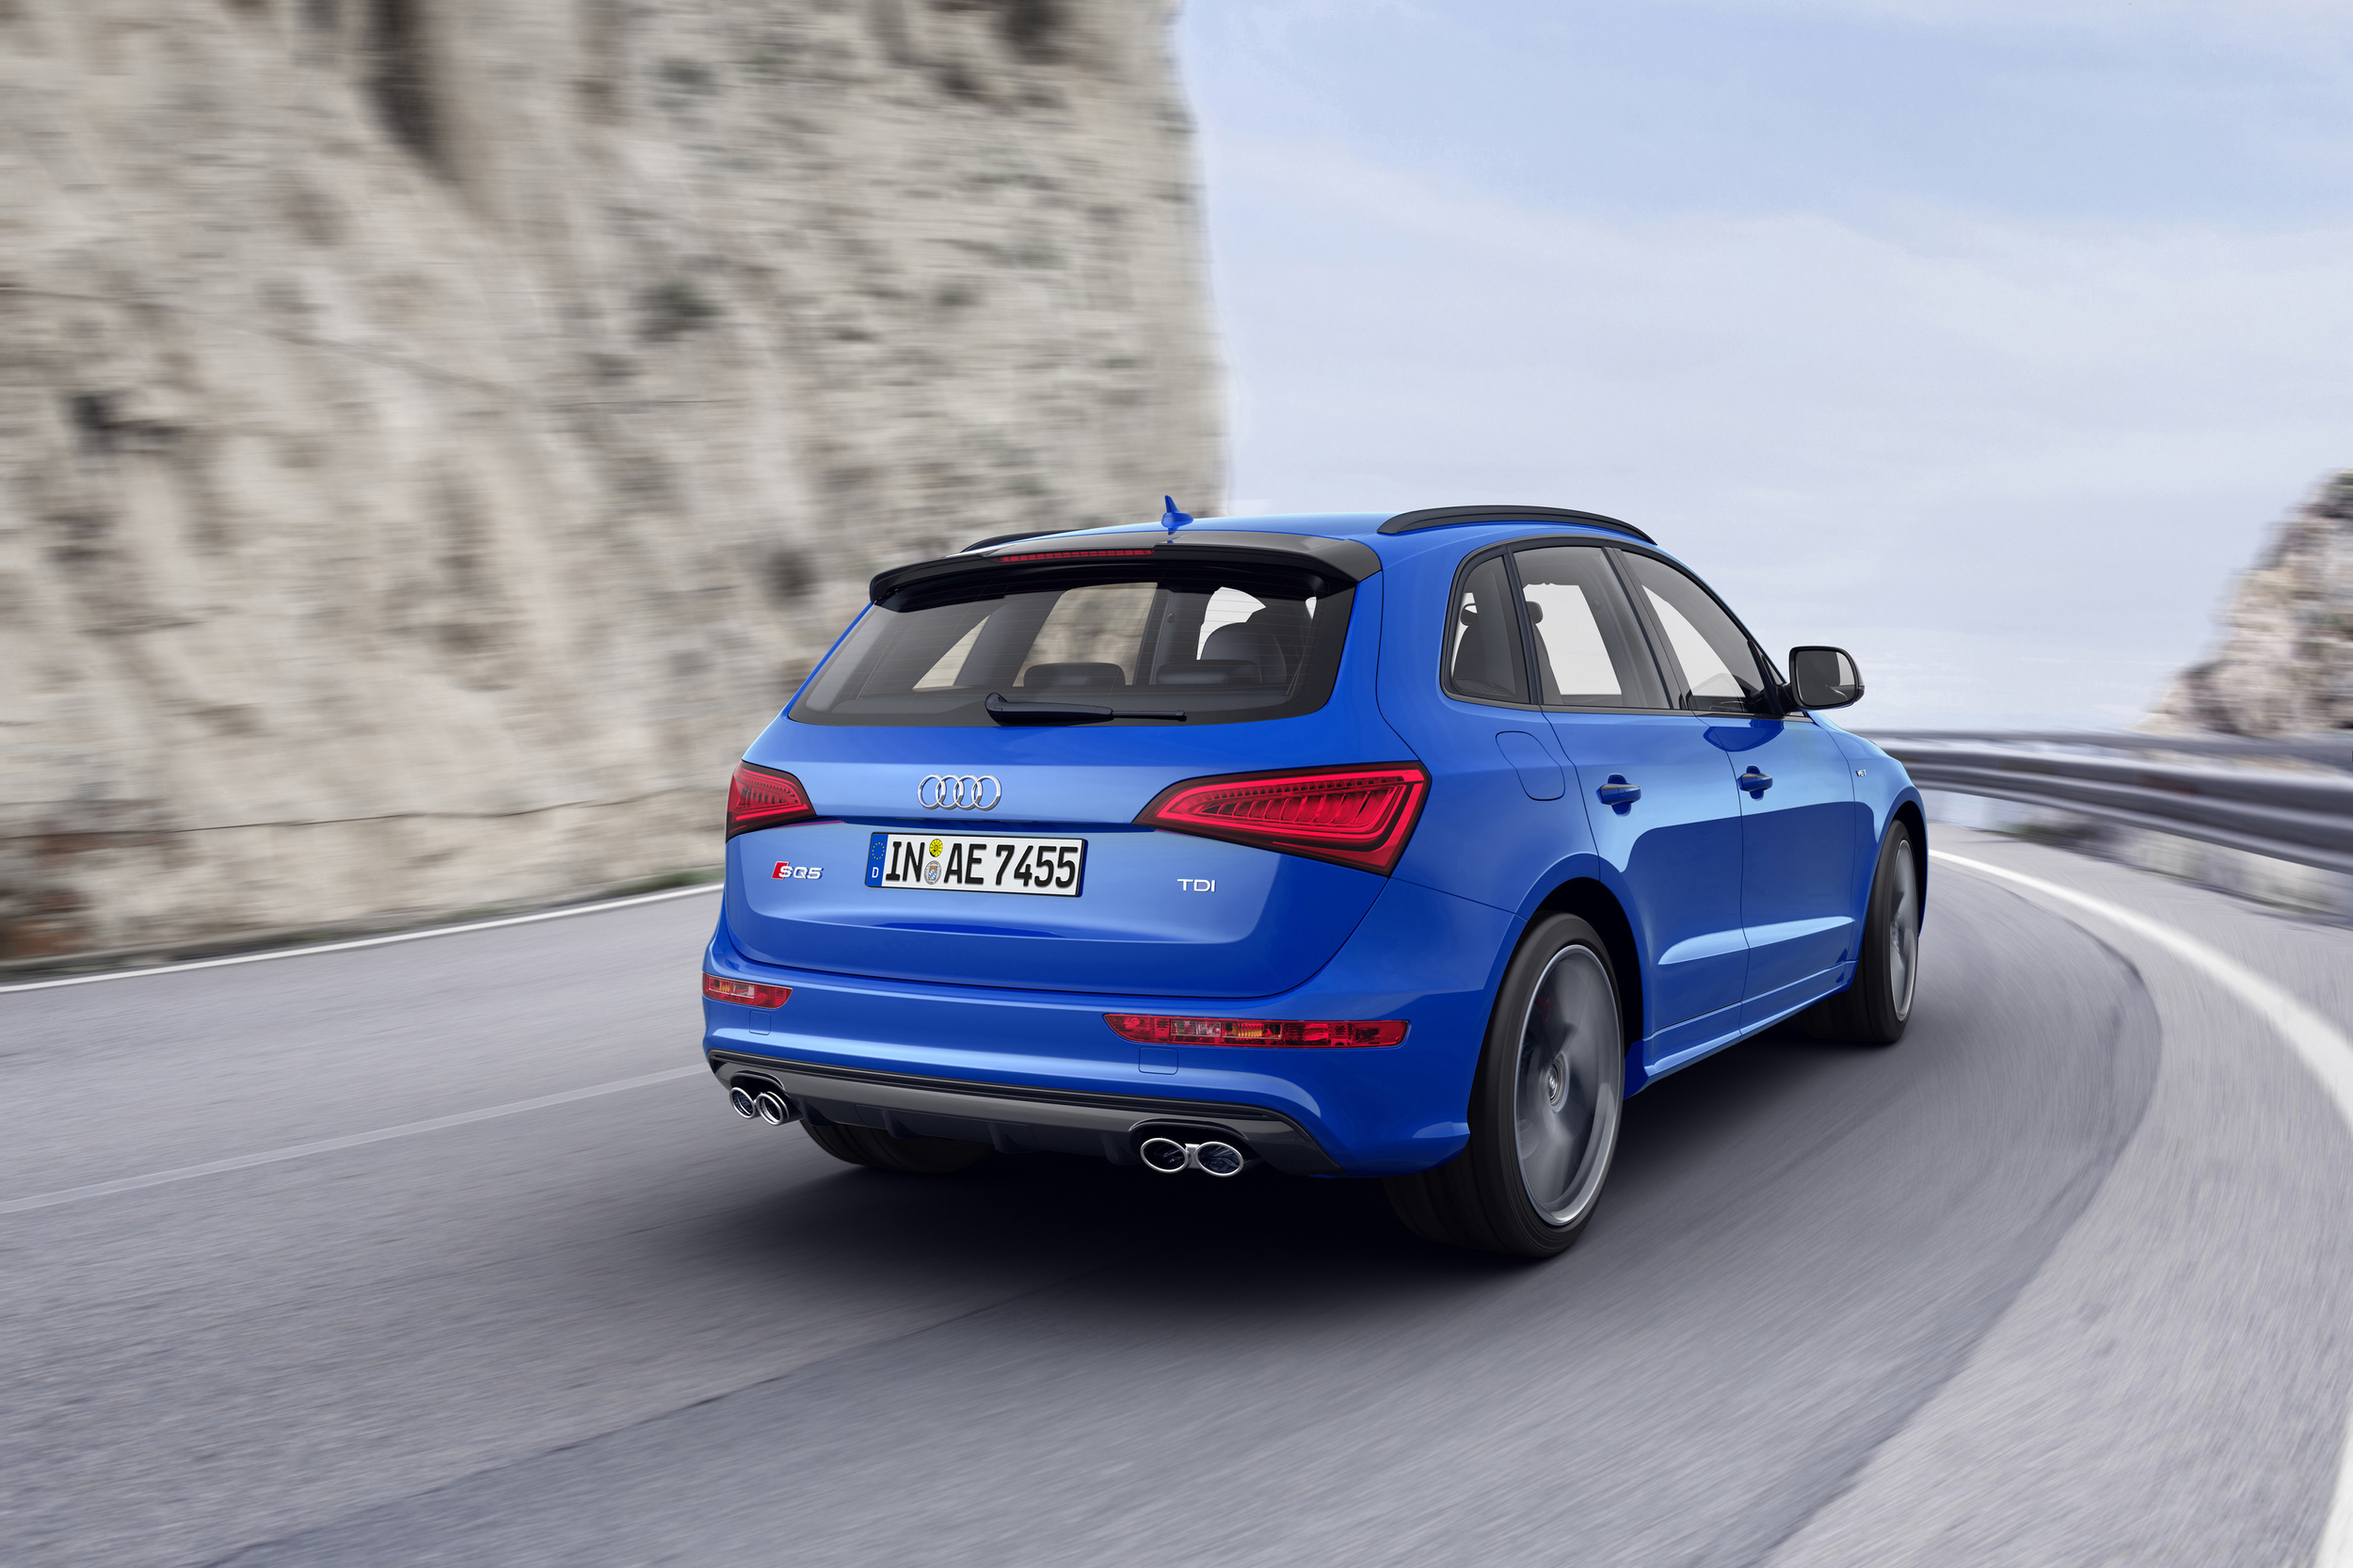 2016 Audi Sq5 Tdi Plus Model (Photo 7 of 9)